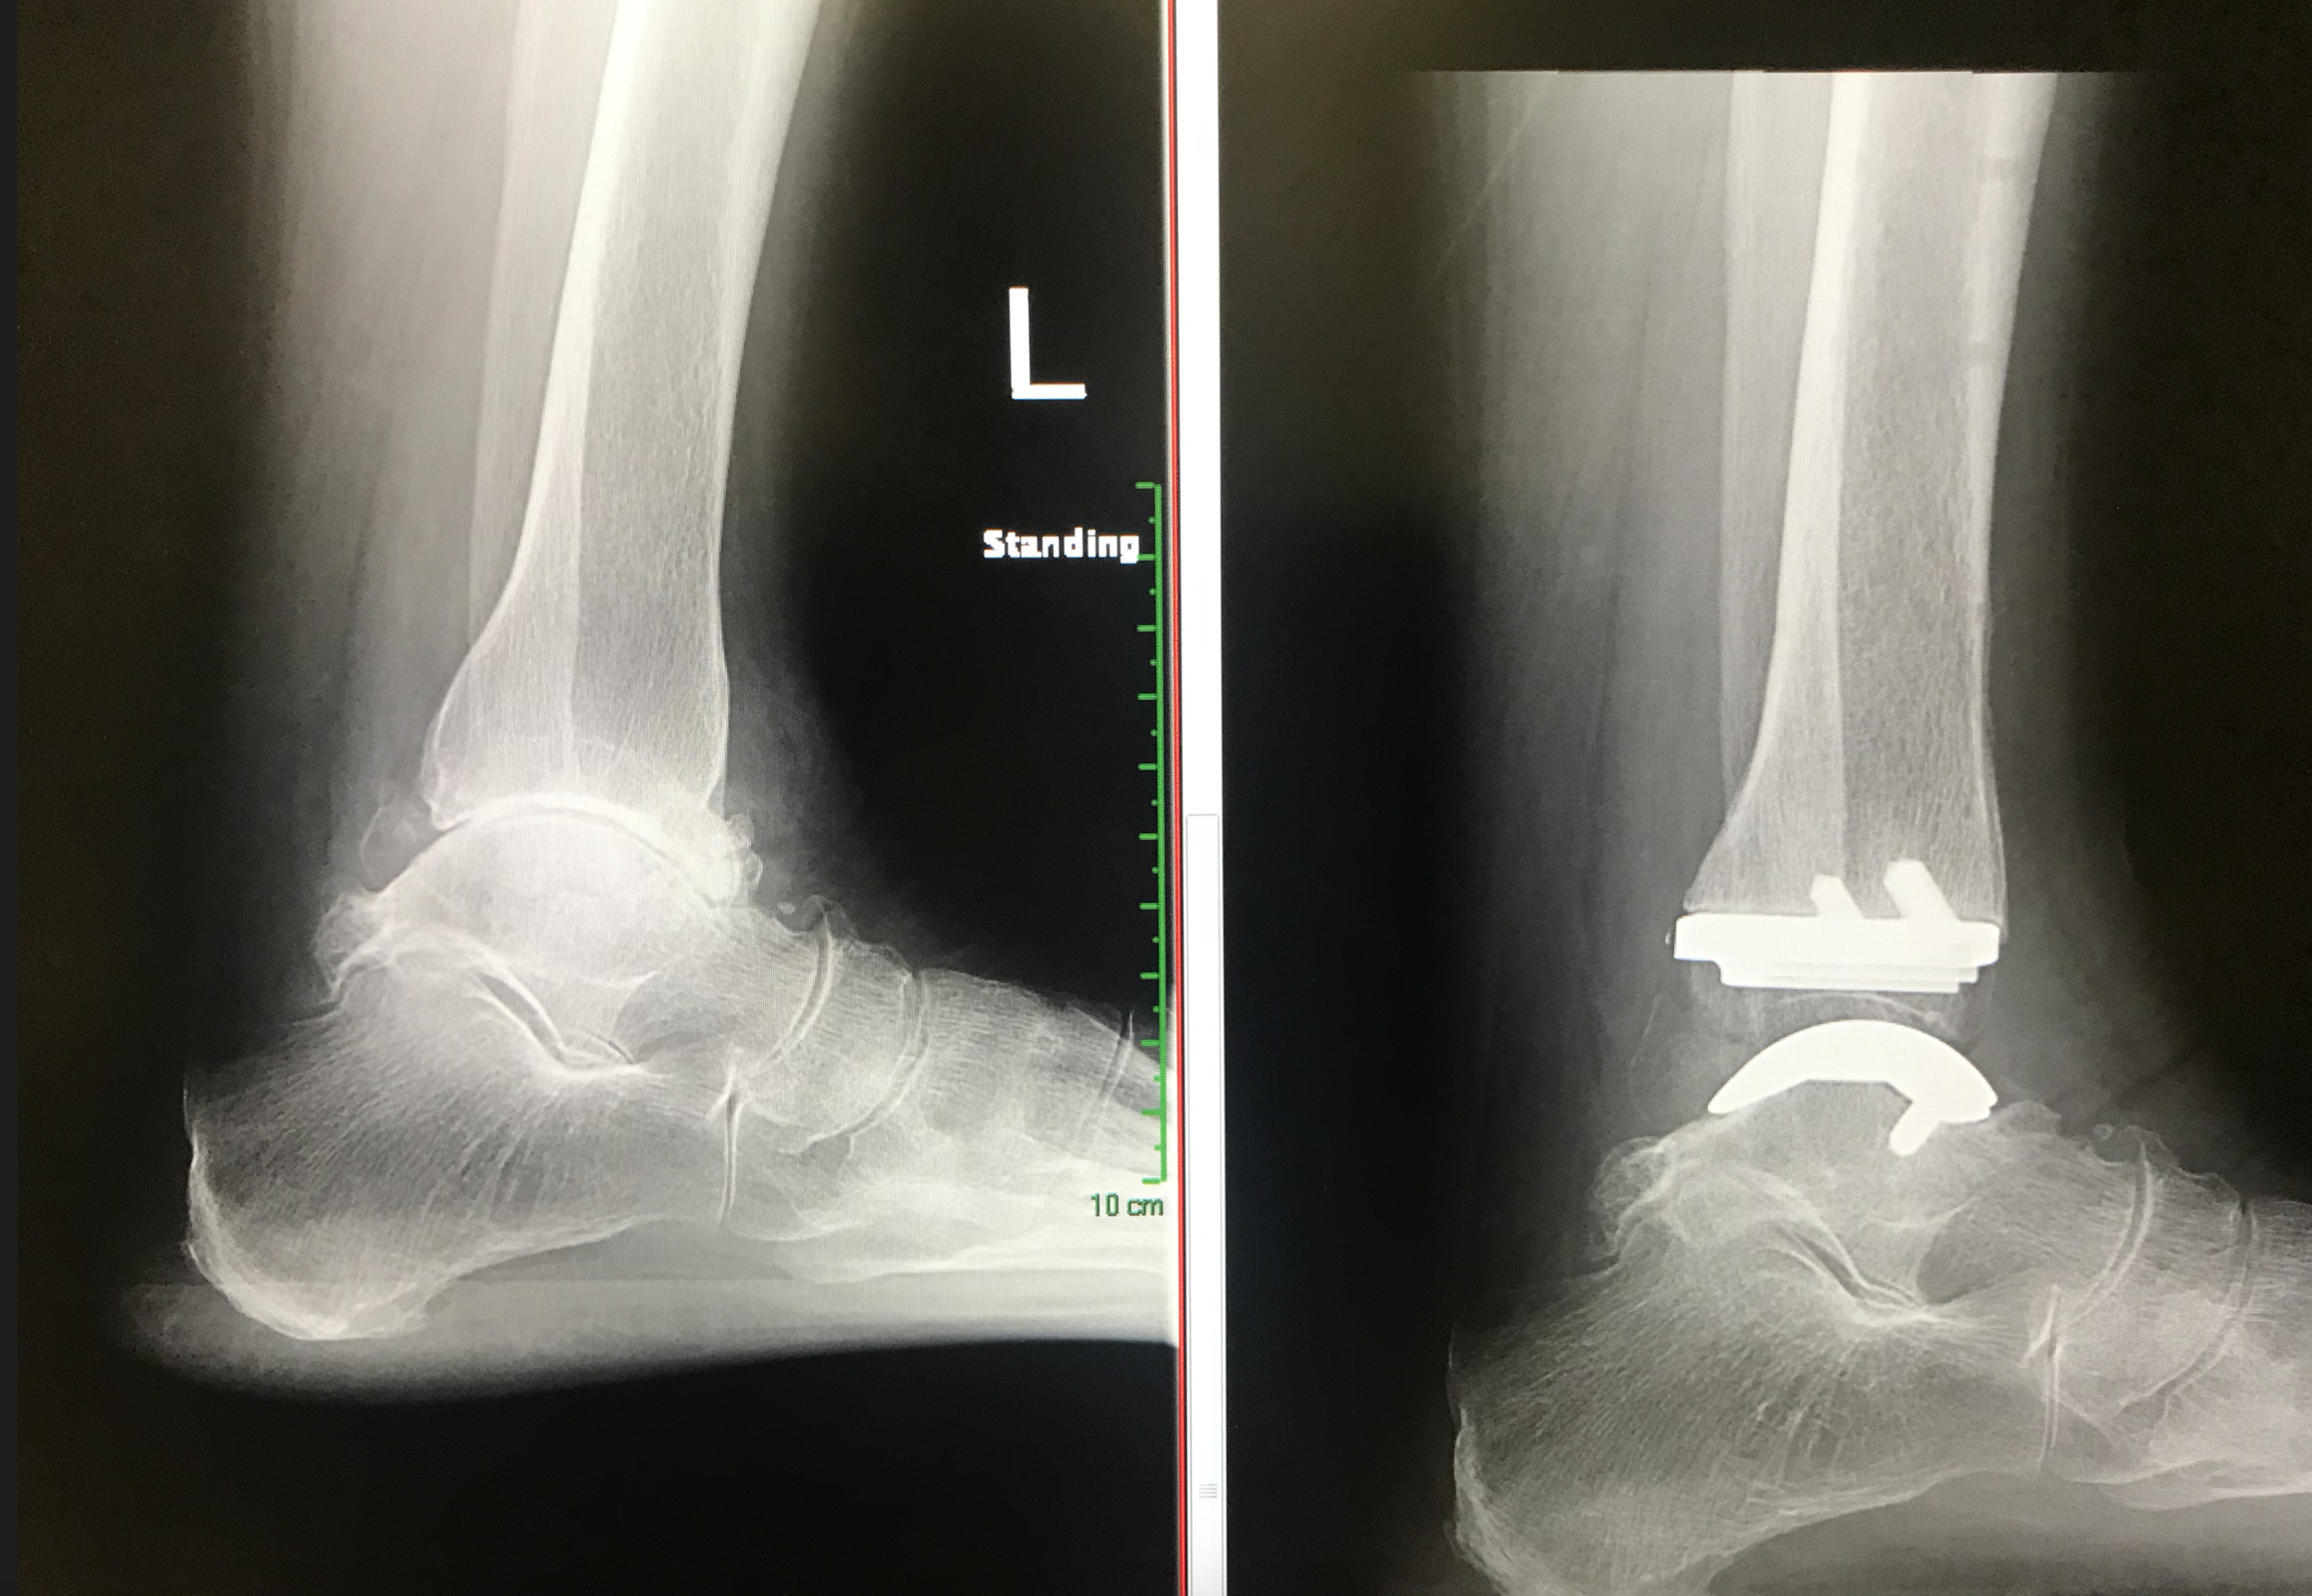 Case 1: Before and after x-rays